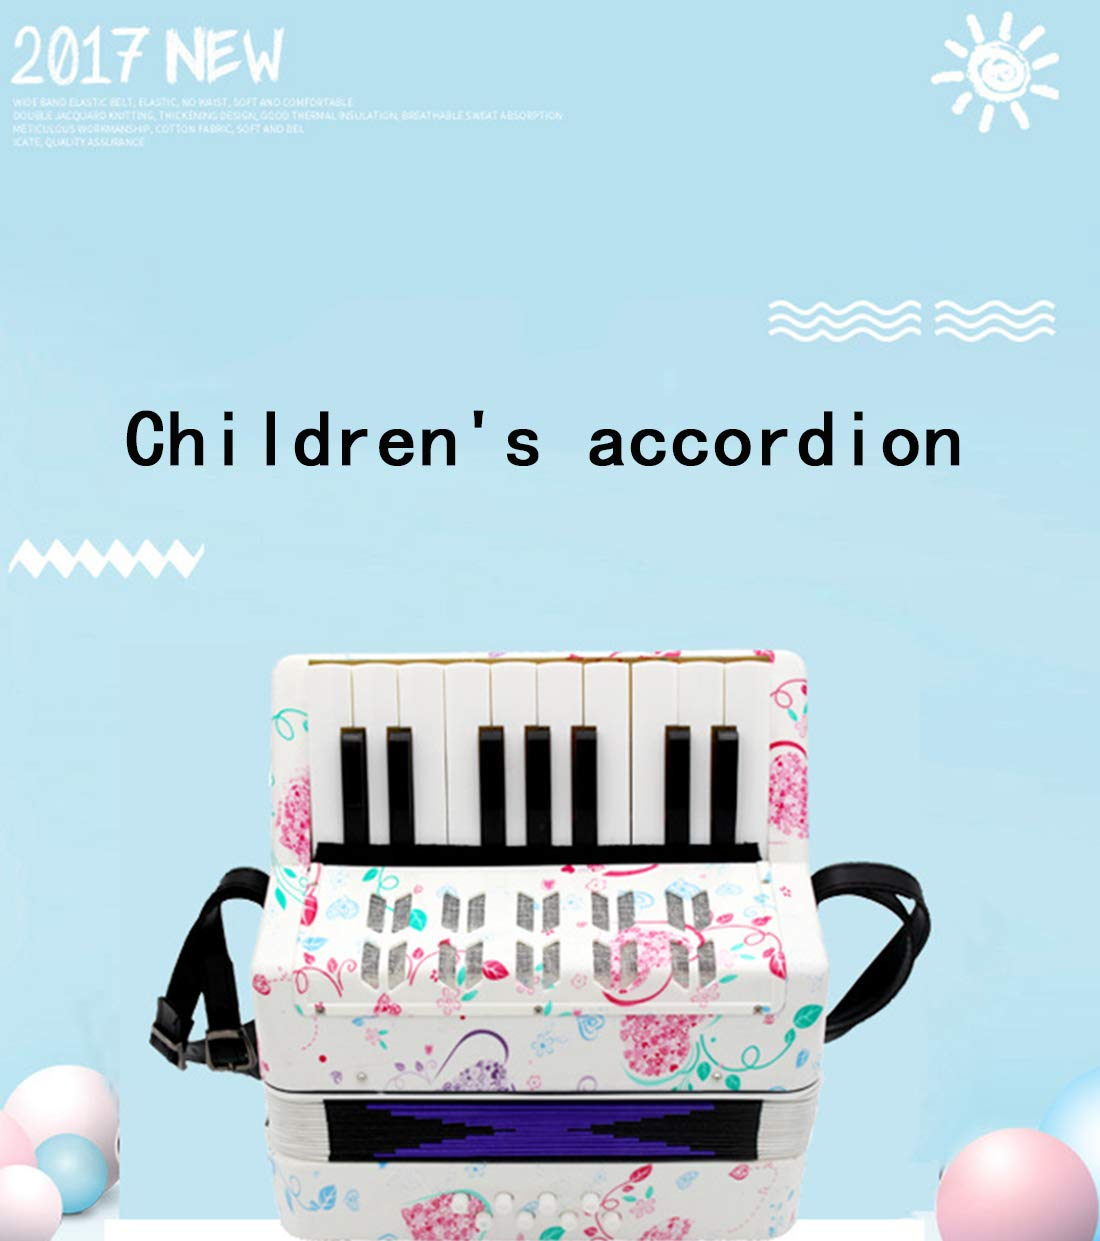 SFQNPA Heart-Shaped Children's Amateur Beginner Mini 17-Key 8 Bass Accordion Educational Instrument Toy Kids Piano Percussion Accordion Musical Toy,Green by SFQNPA (Image #7)